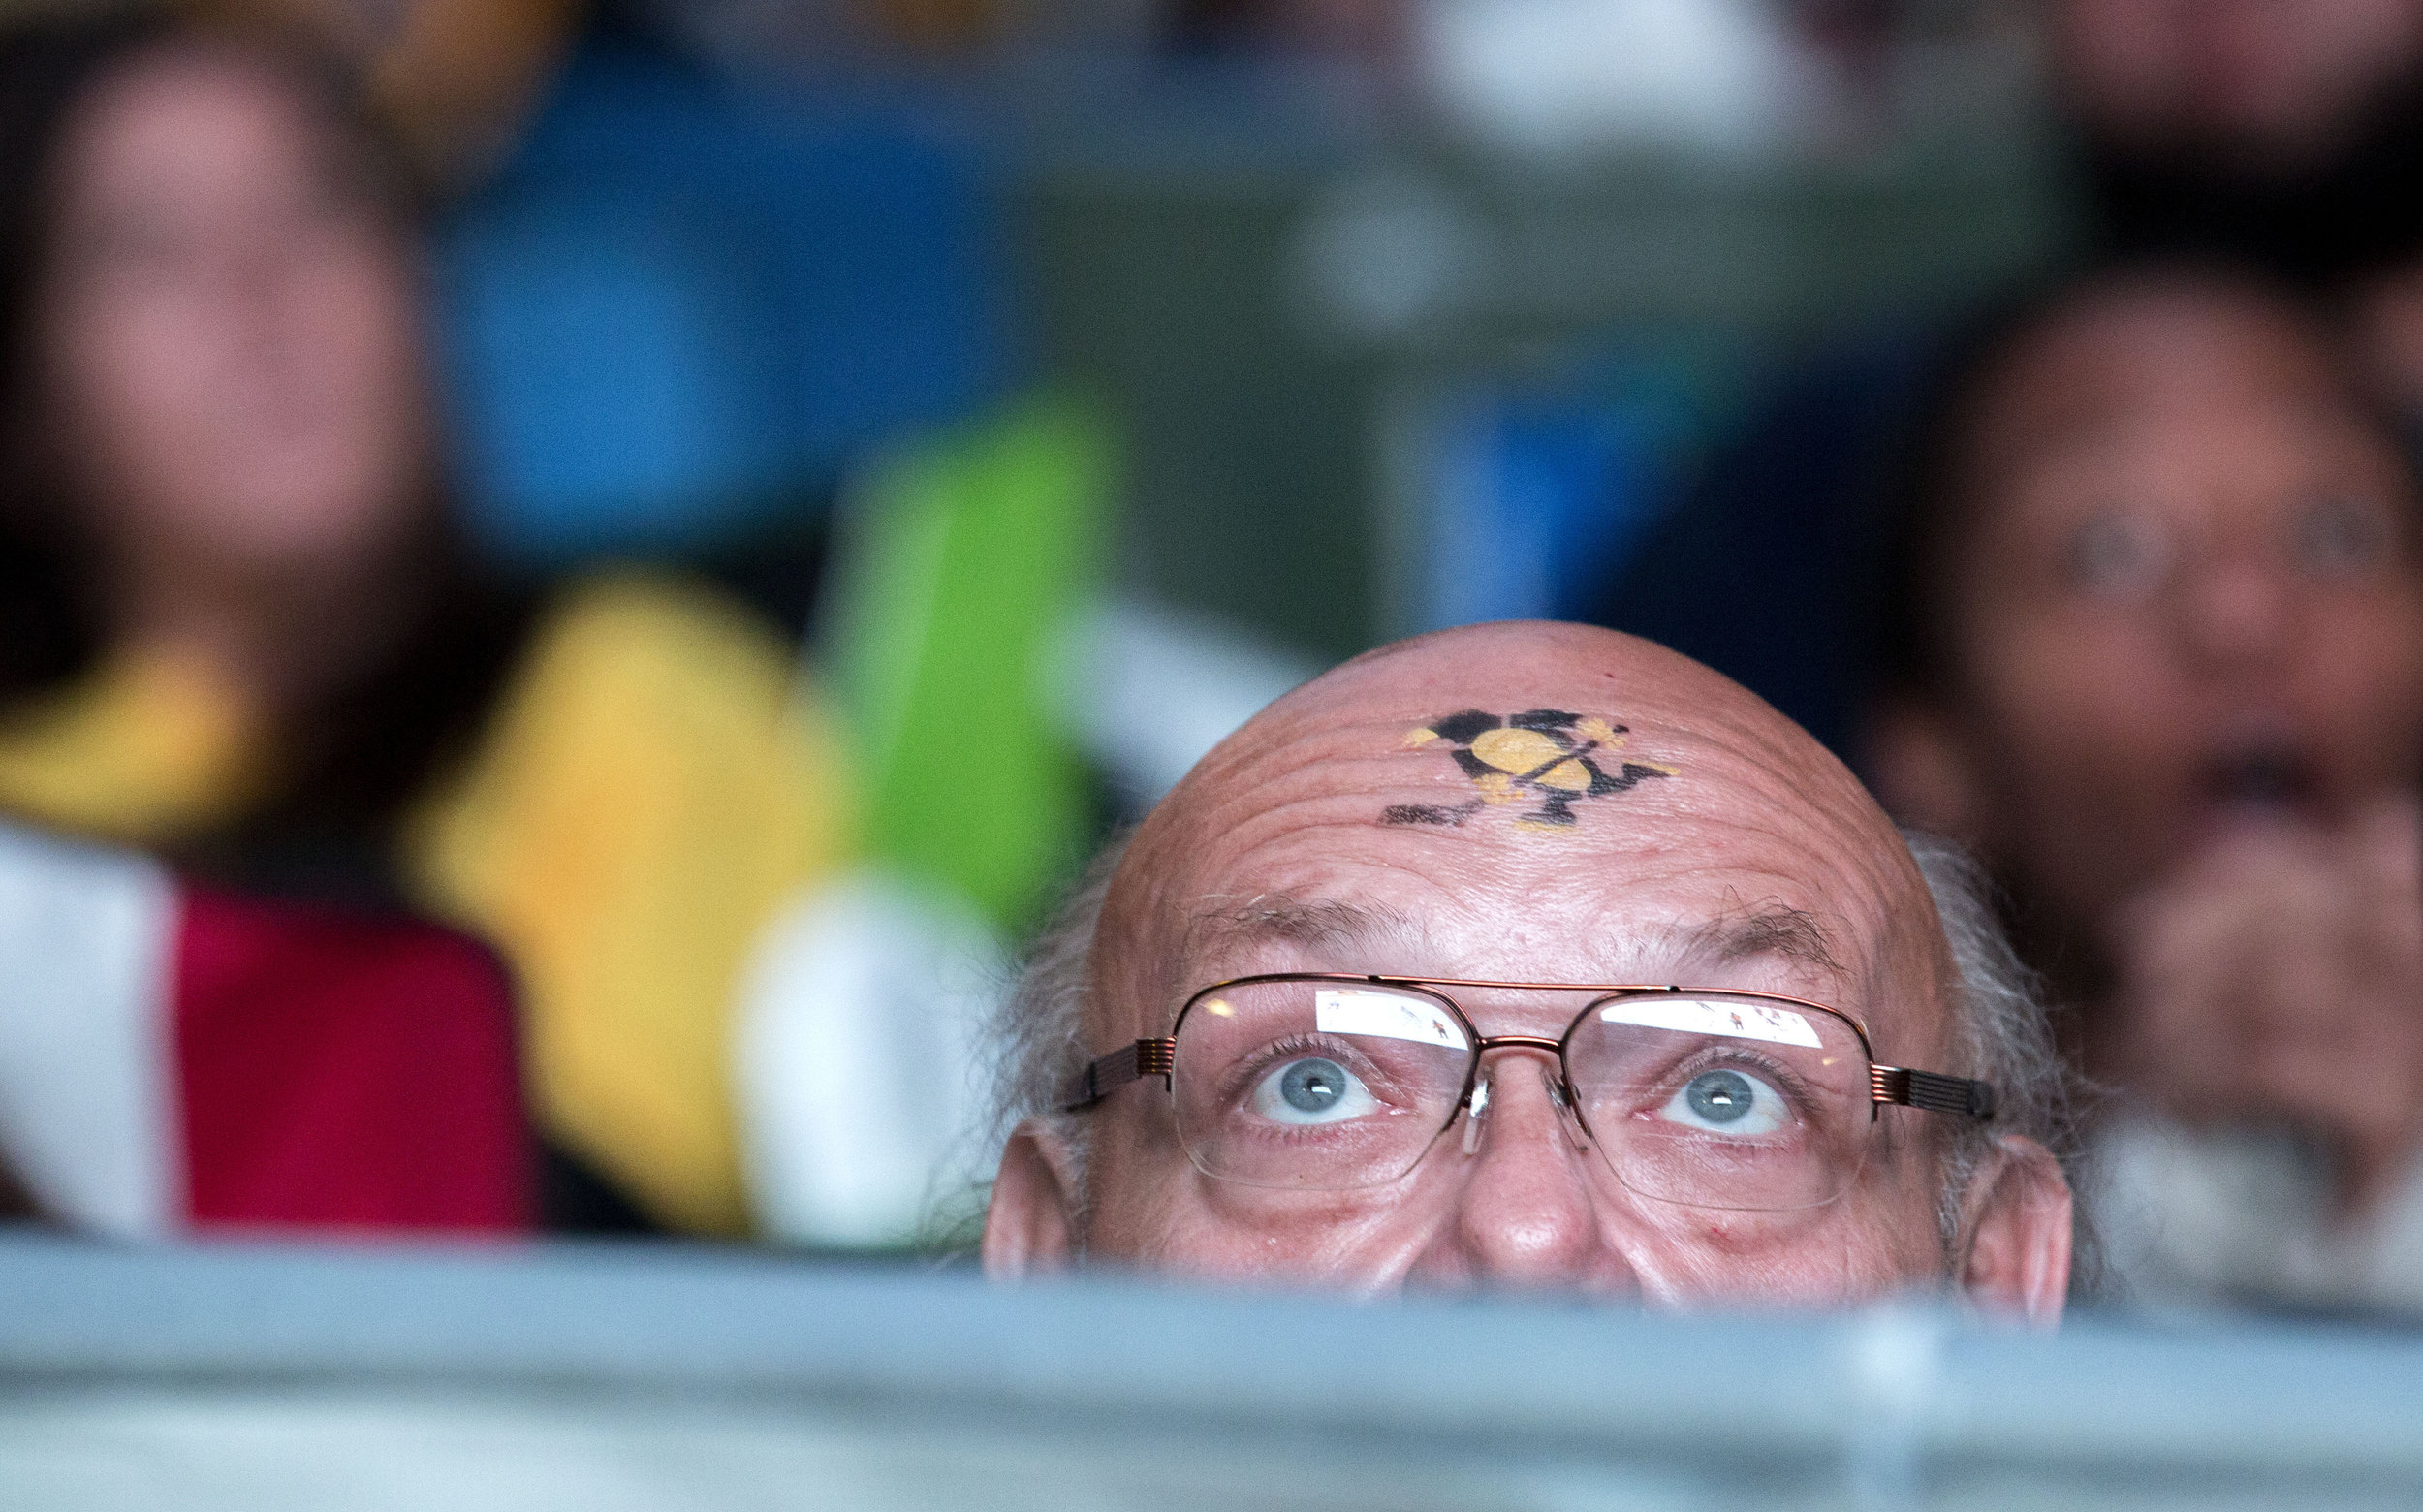 Tyrone Sub, of Sarver, looks up towards the big screen during a watch party on Thursday, June 8, 2017, during Game 5 of the Stanley Cup Finals at PPG Paints Arena in Pittsburgh.